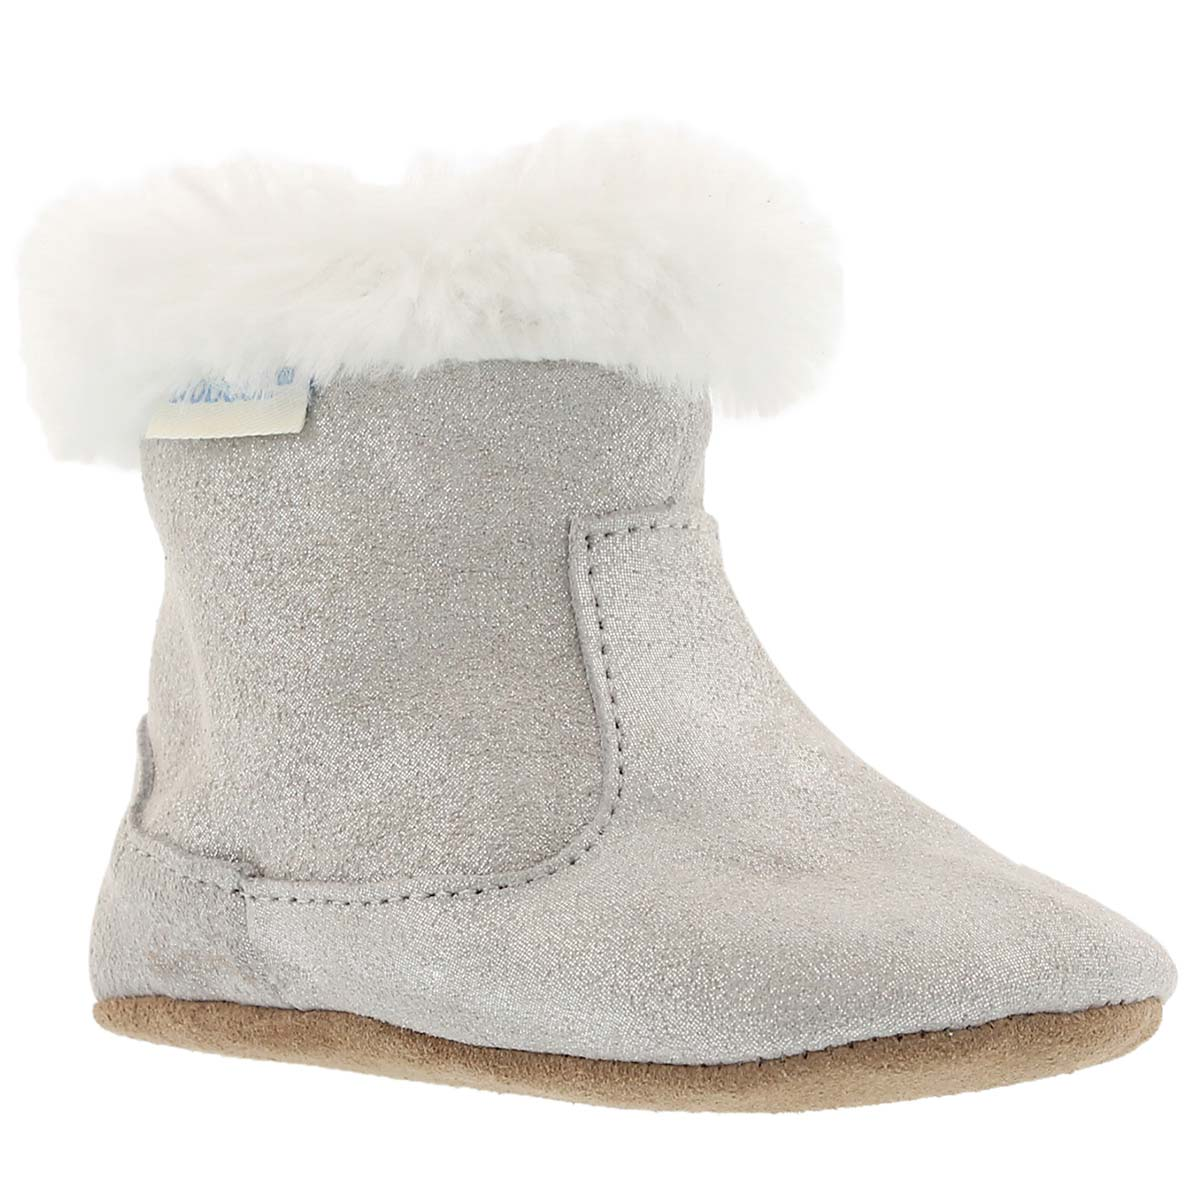 Infants' THEA TWINKLE grey sparkle booties